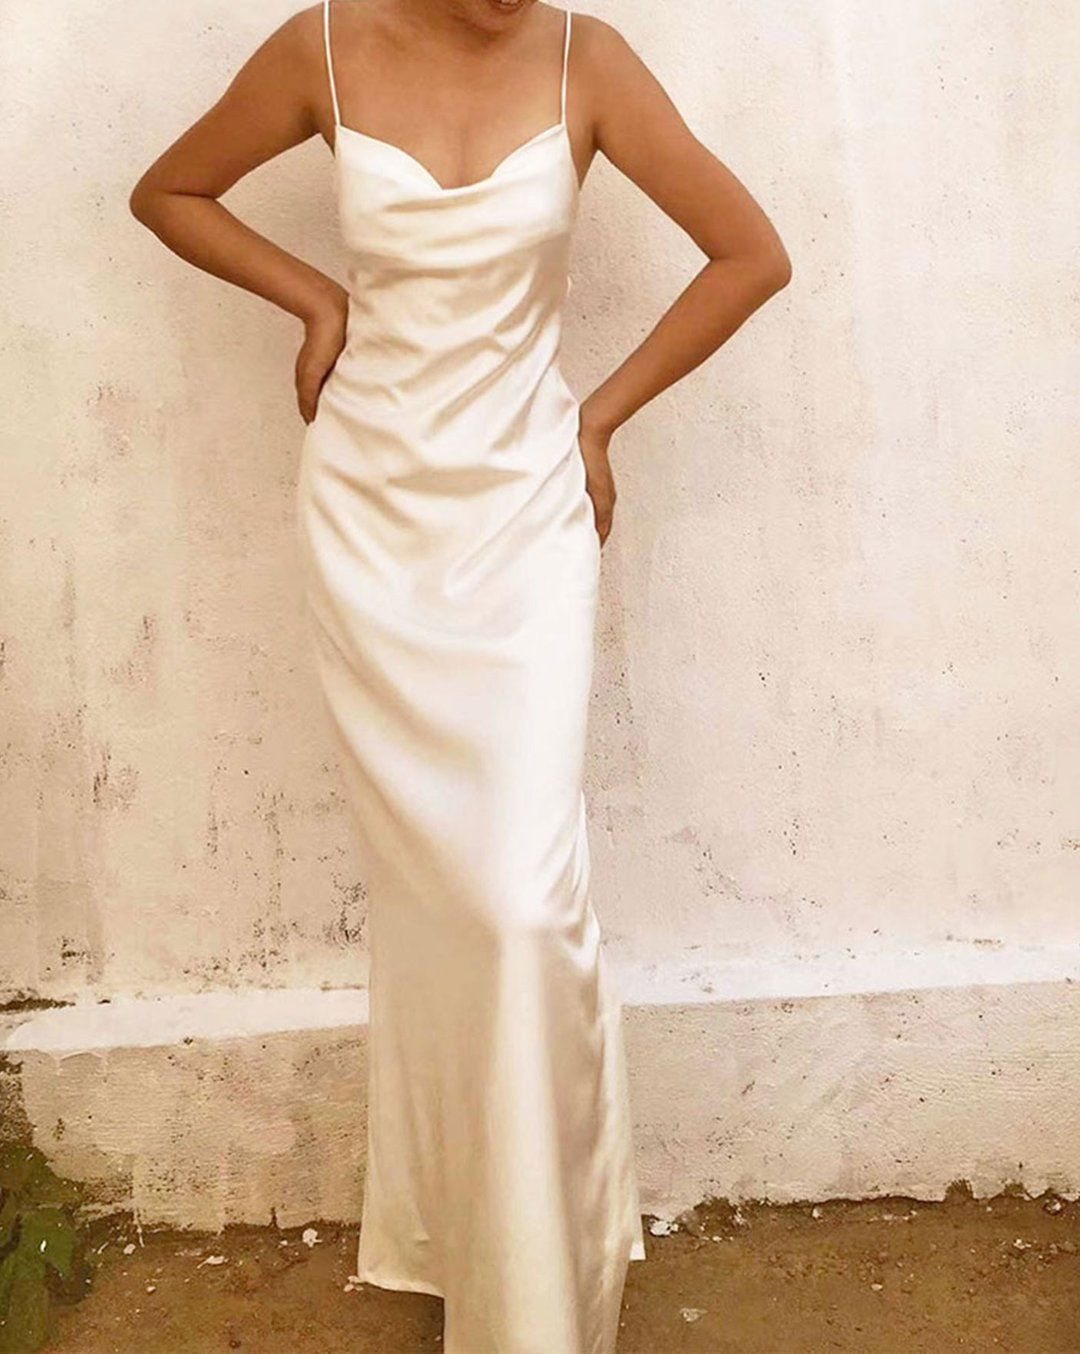 Crystal White Cowl Neck Backless Silk Gown By Alashanghai Silk Studio Slip Wedding Dress Silk Wedding Dress Dresses,Bridesmaid Dress Ideas For Beach Wedding